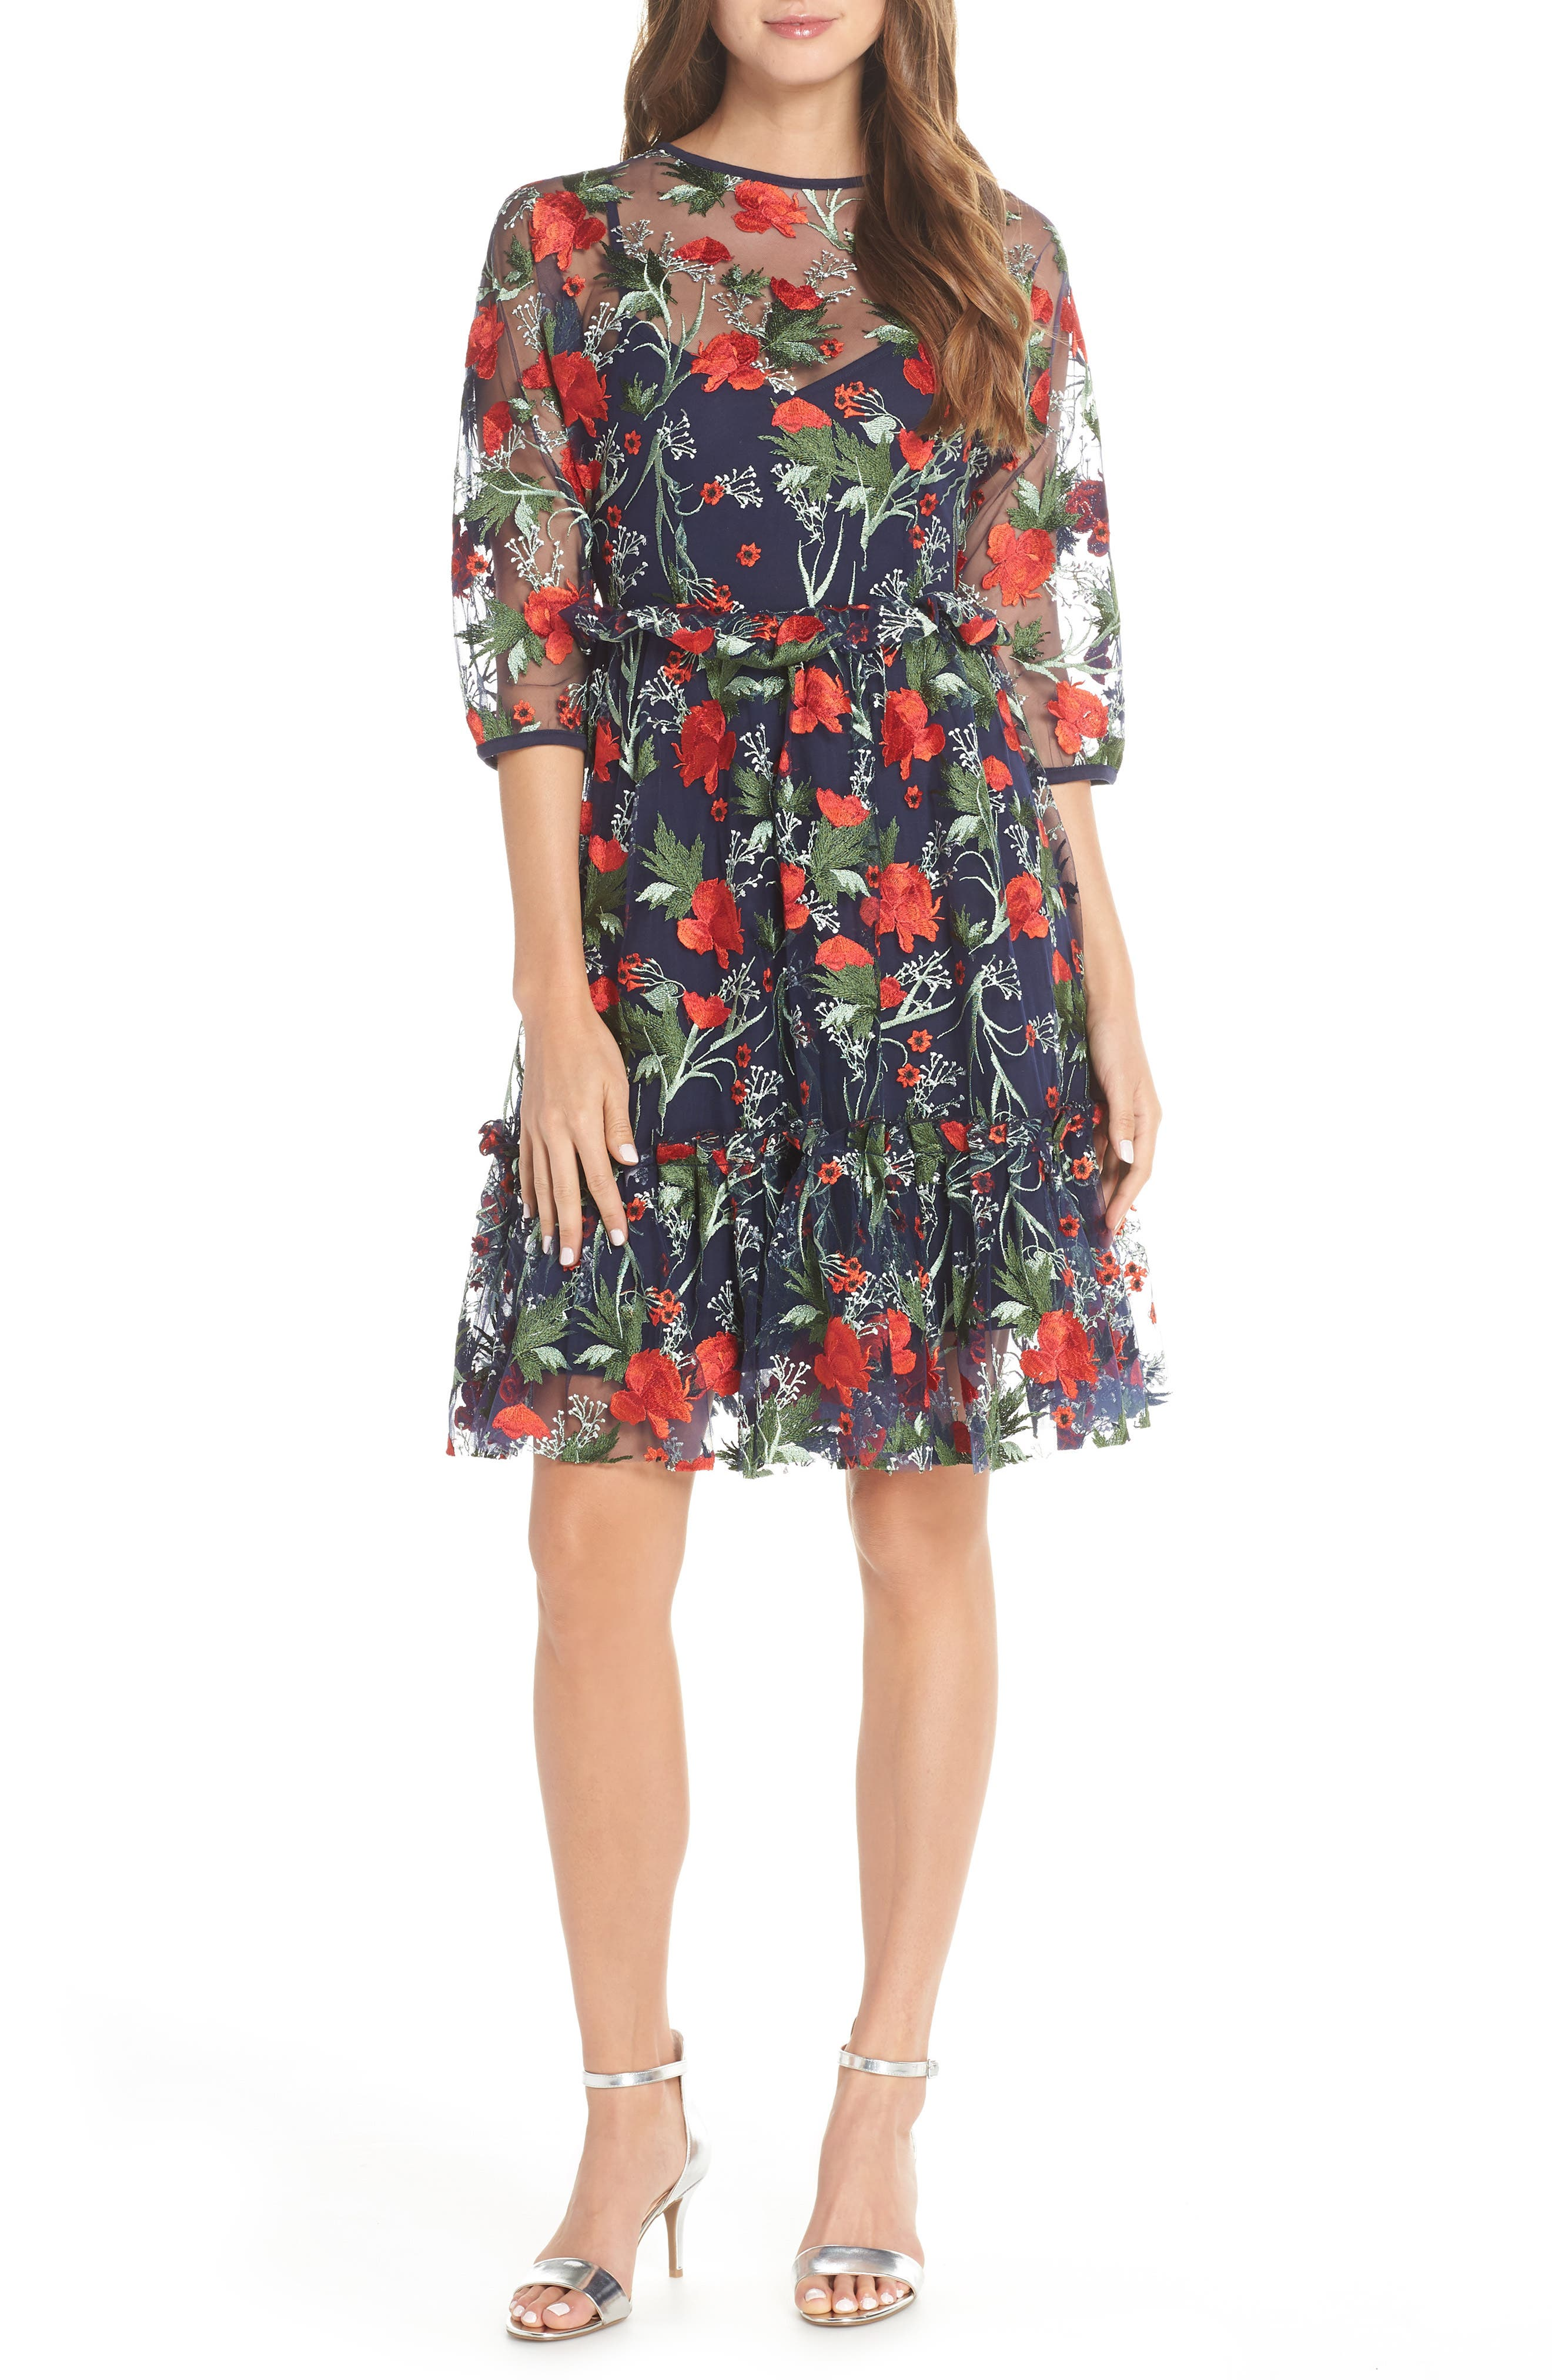 petite women's 1901 embroidered mesh fit & flare dress, size 12p - blue